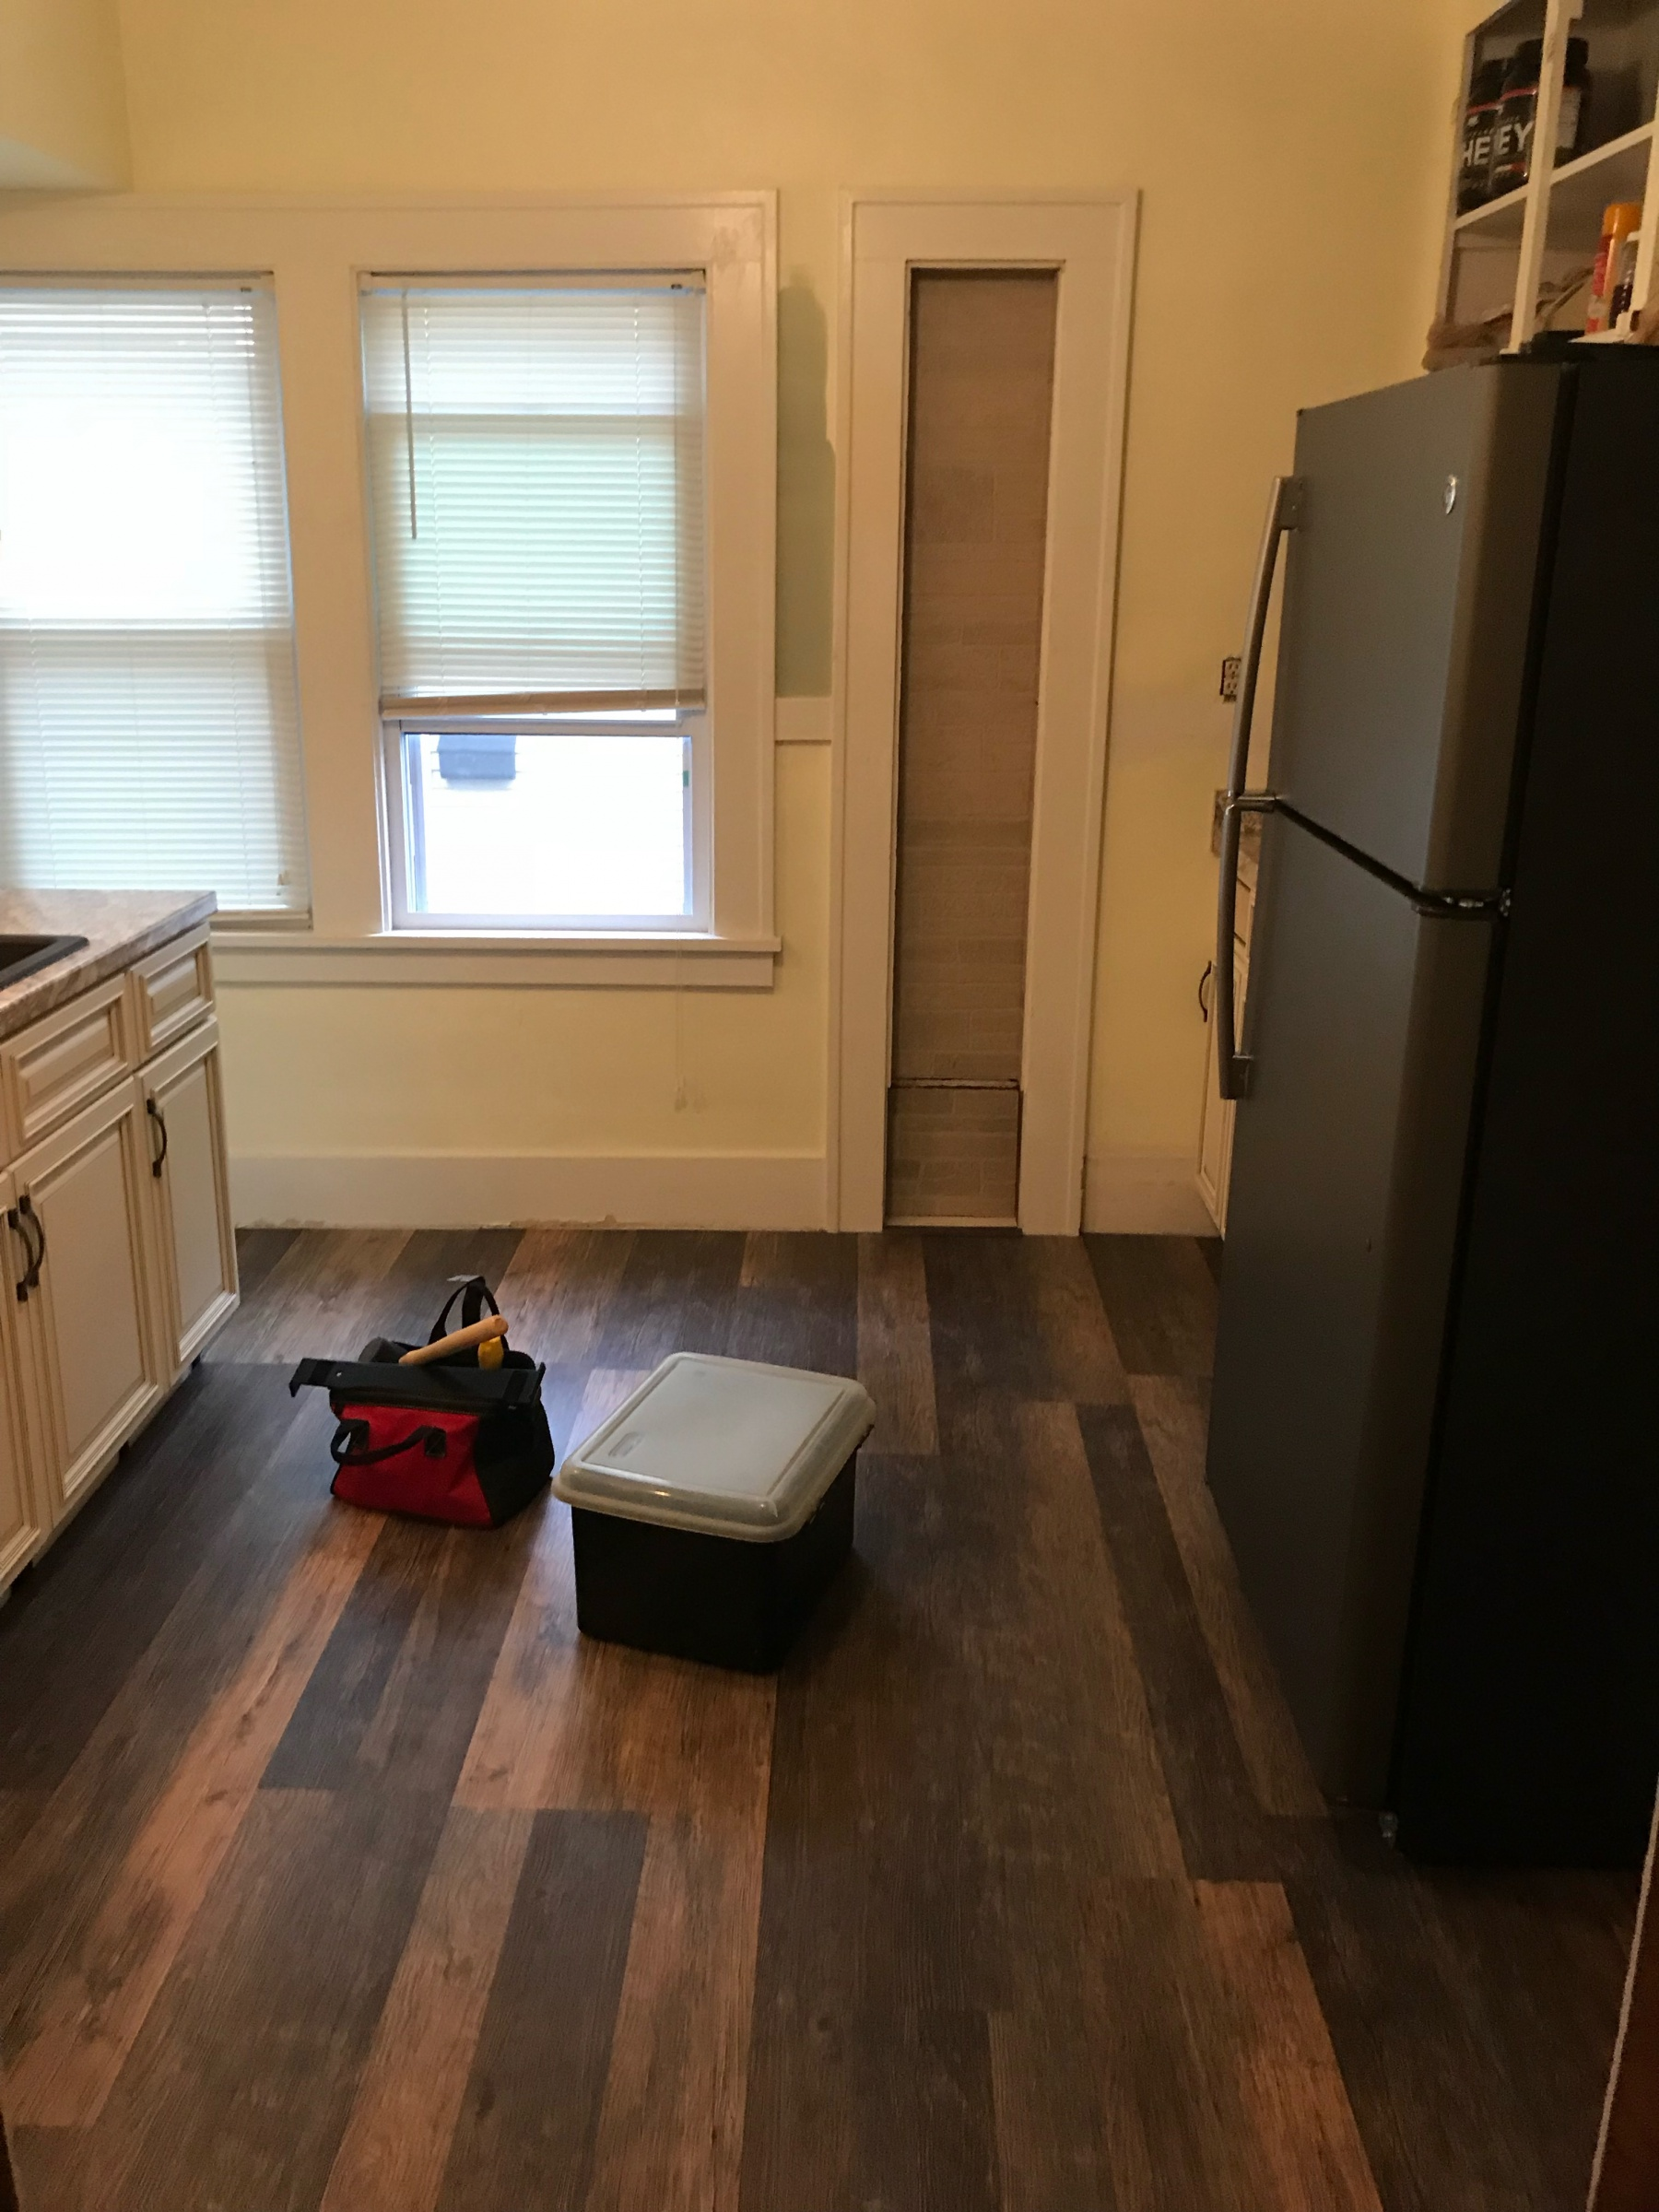 What color should I paint new kitchen??-img_2719.jpg